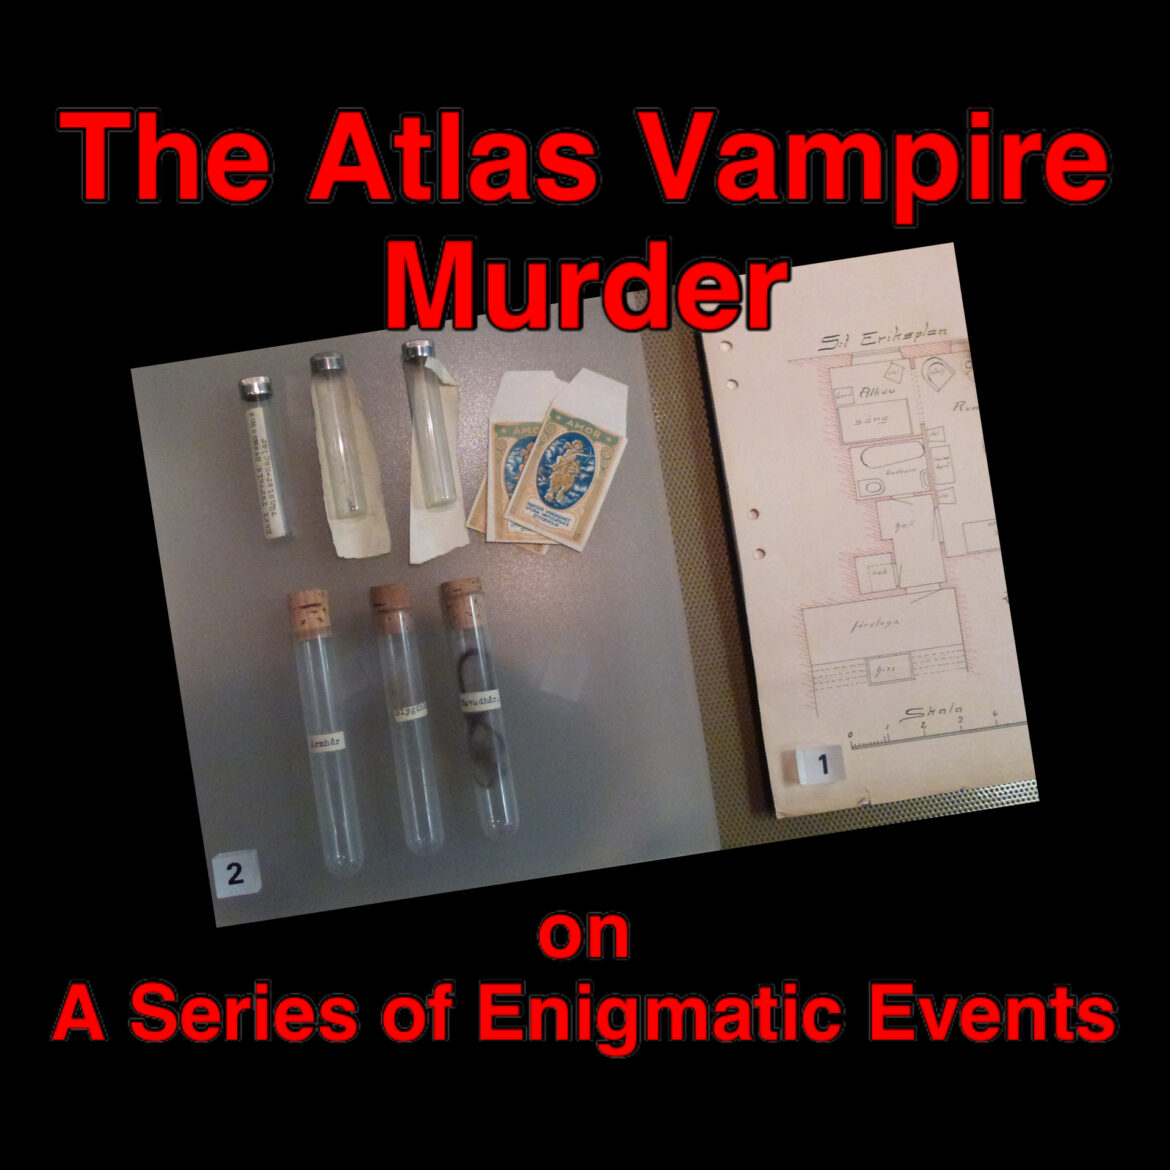 A Series of Enigmatic Events: The Atlas Vampire Murder